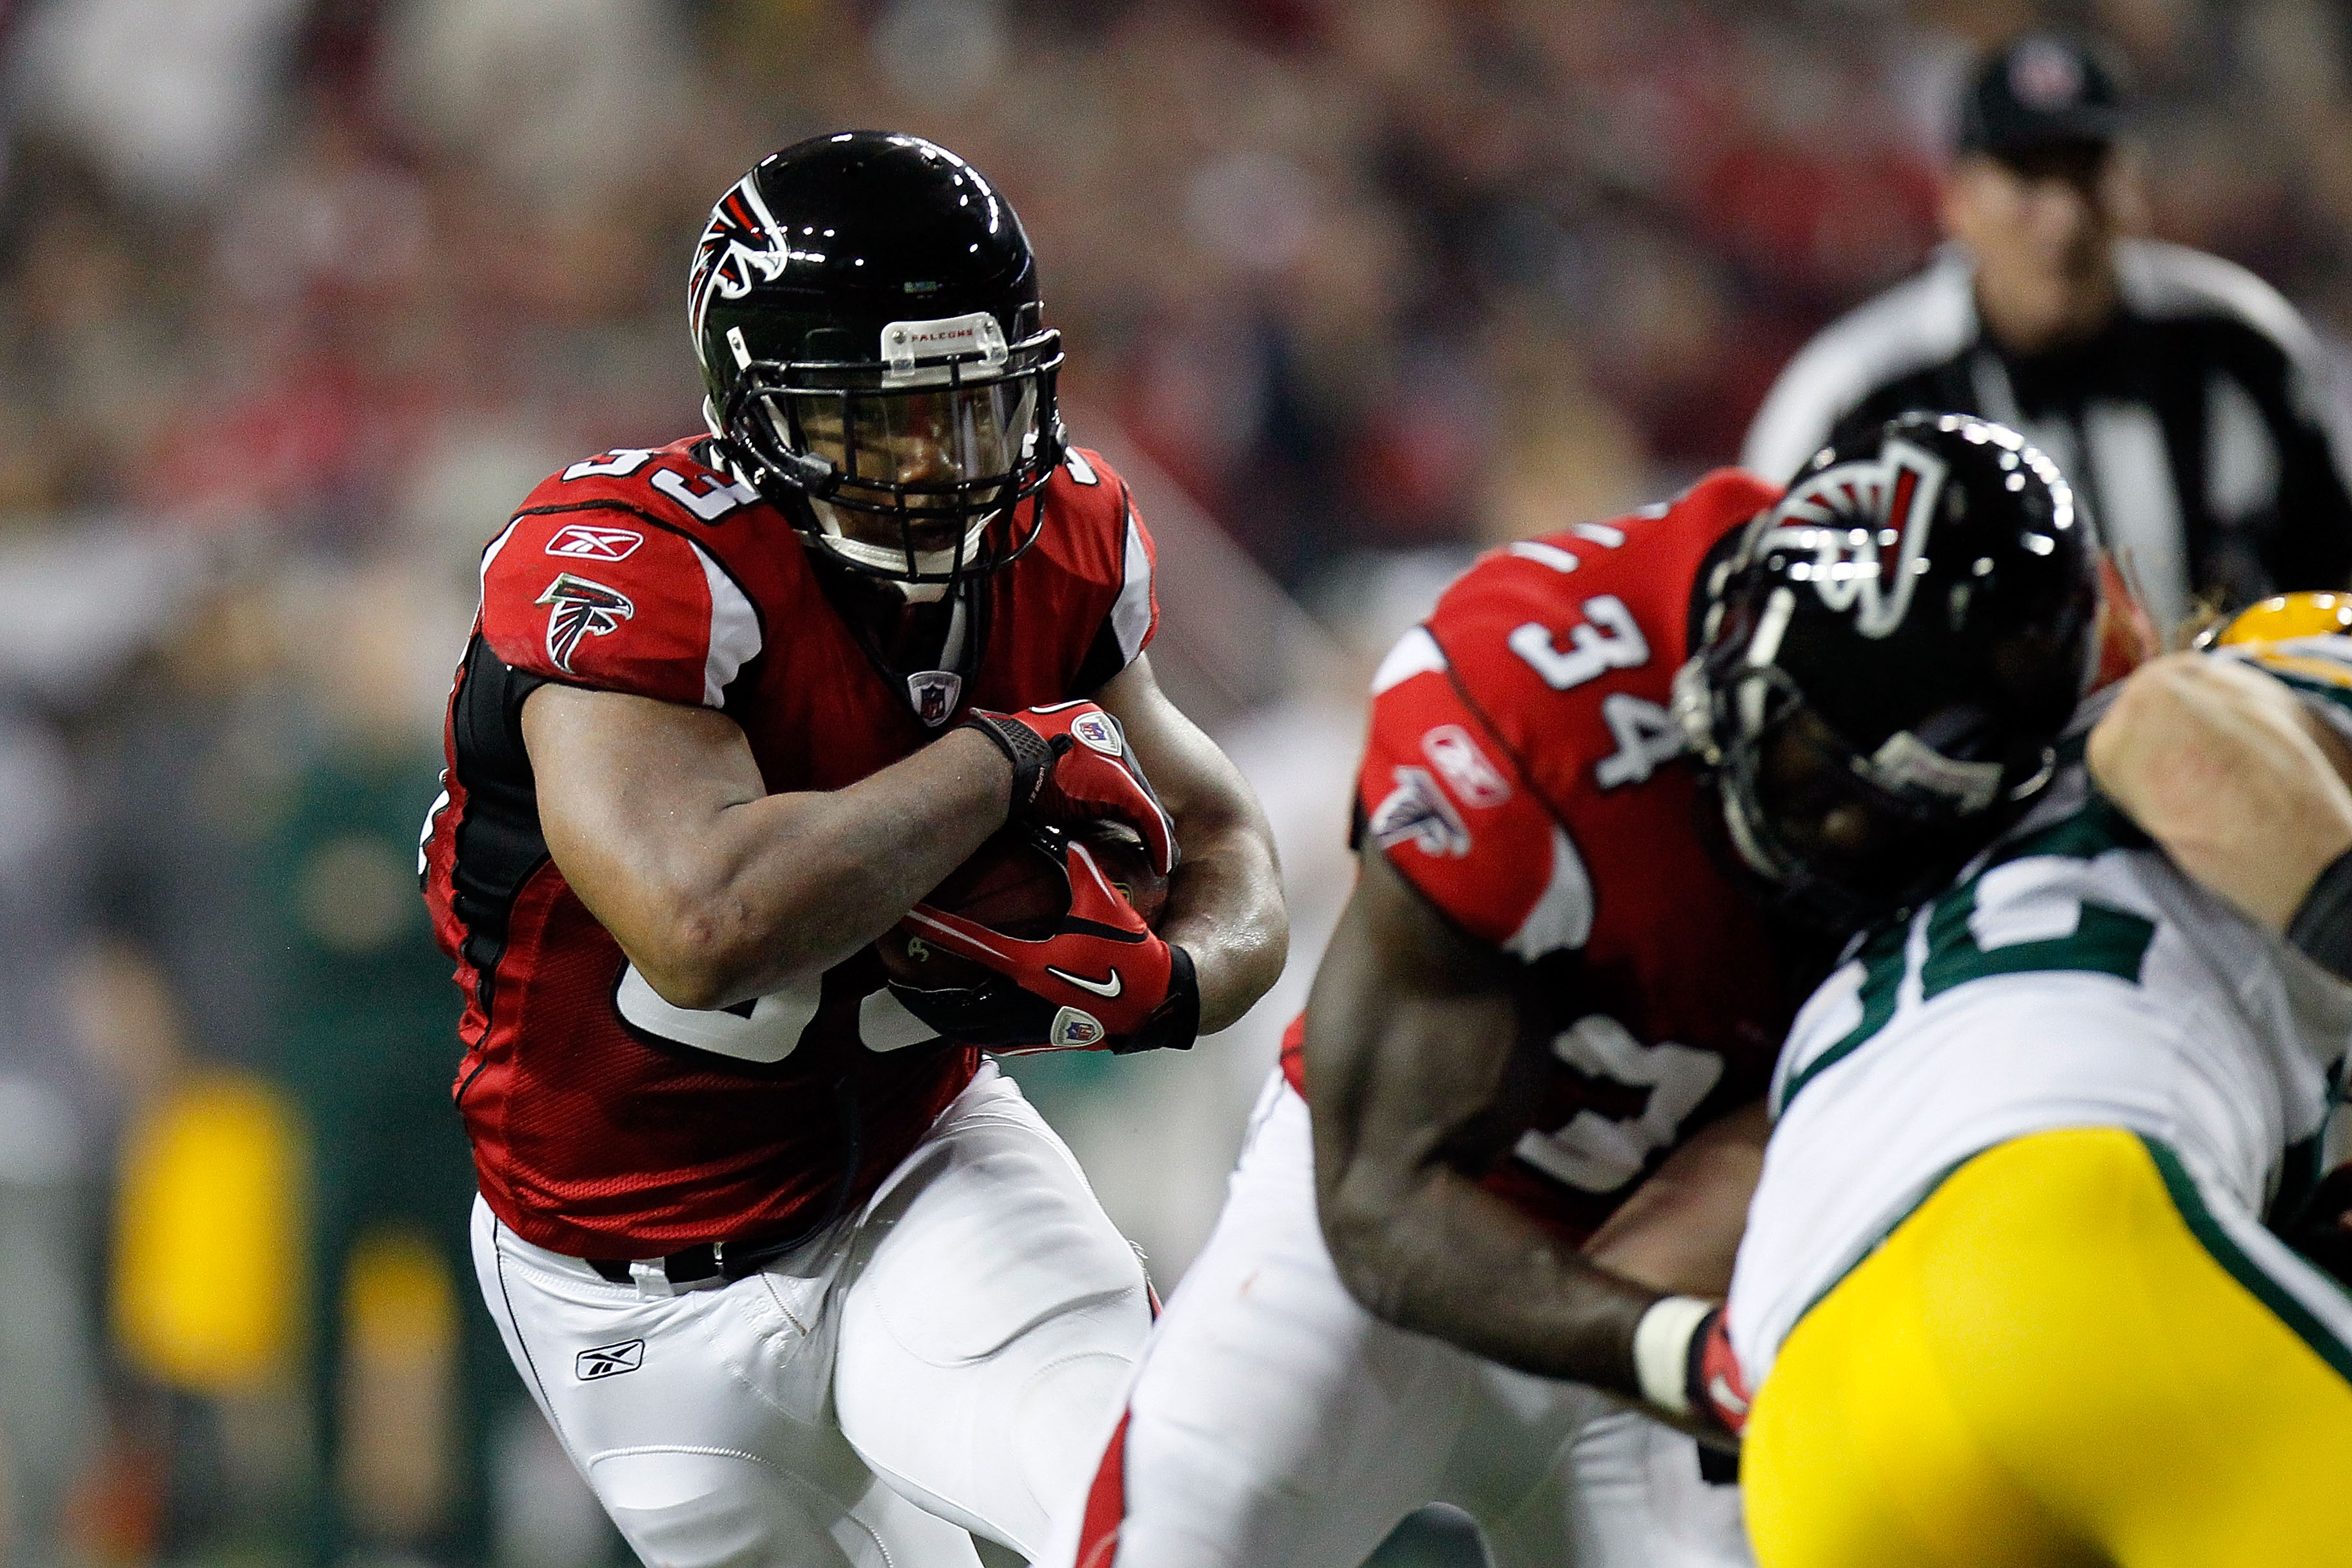 ATLANTA, GA - JANUARY 15:  Michael Turner #33 of the Atlanta Falcons runs with the ball against the Green Bay Packers during their 2011 NFC divisional playoff game at Georgia Dome on January 15, 2011 in Atlanta, Georgia. The Packers won 48-21. (Photo by K